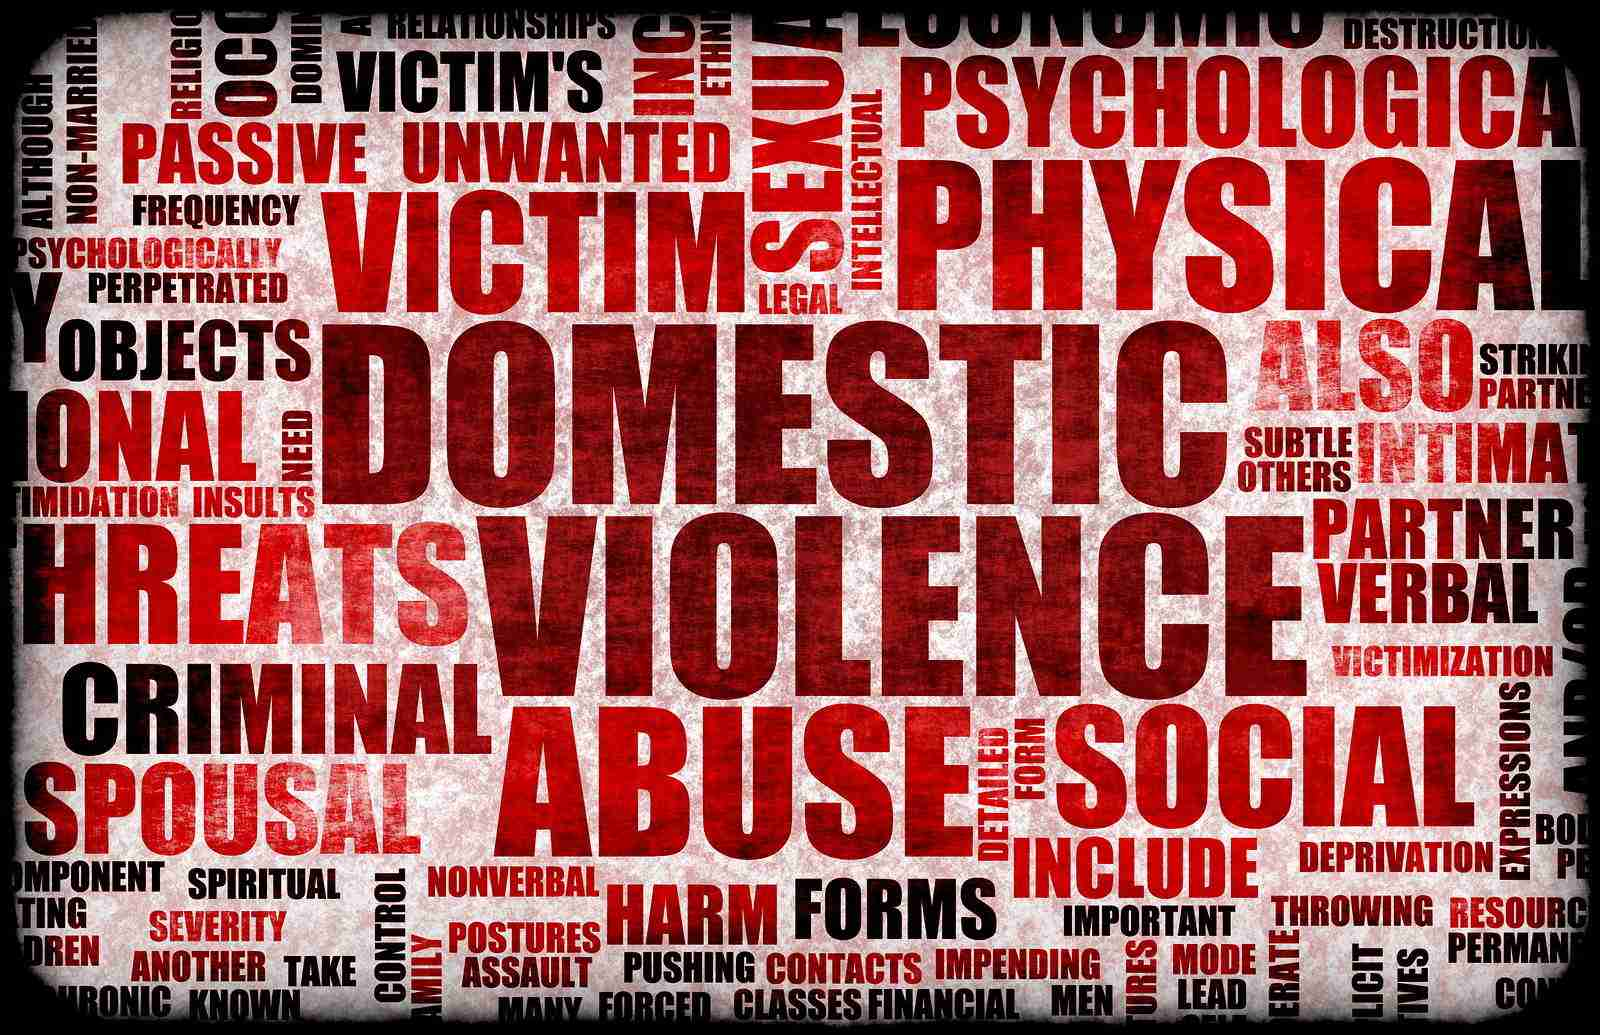 an analysis of the spousal assault in the case of domestic violence